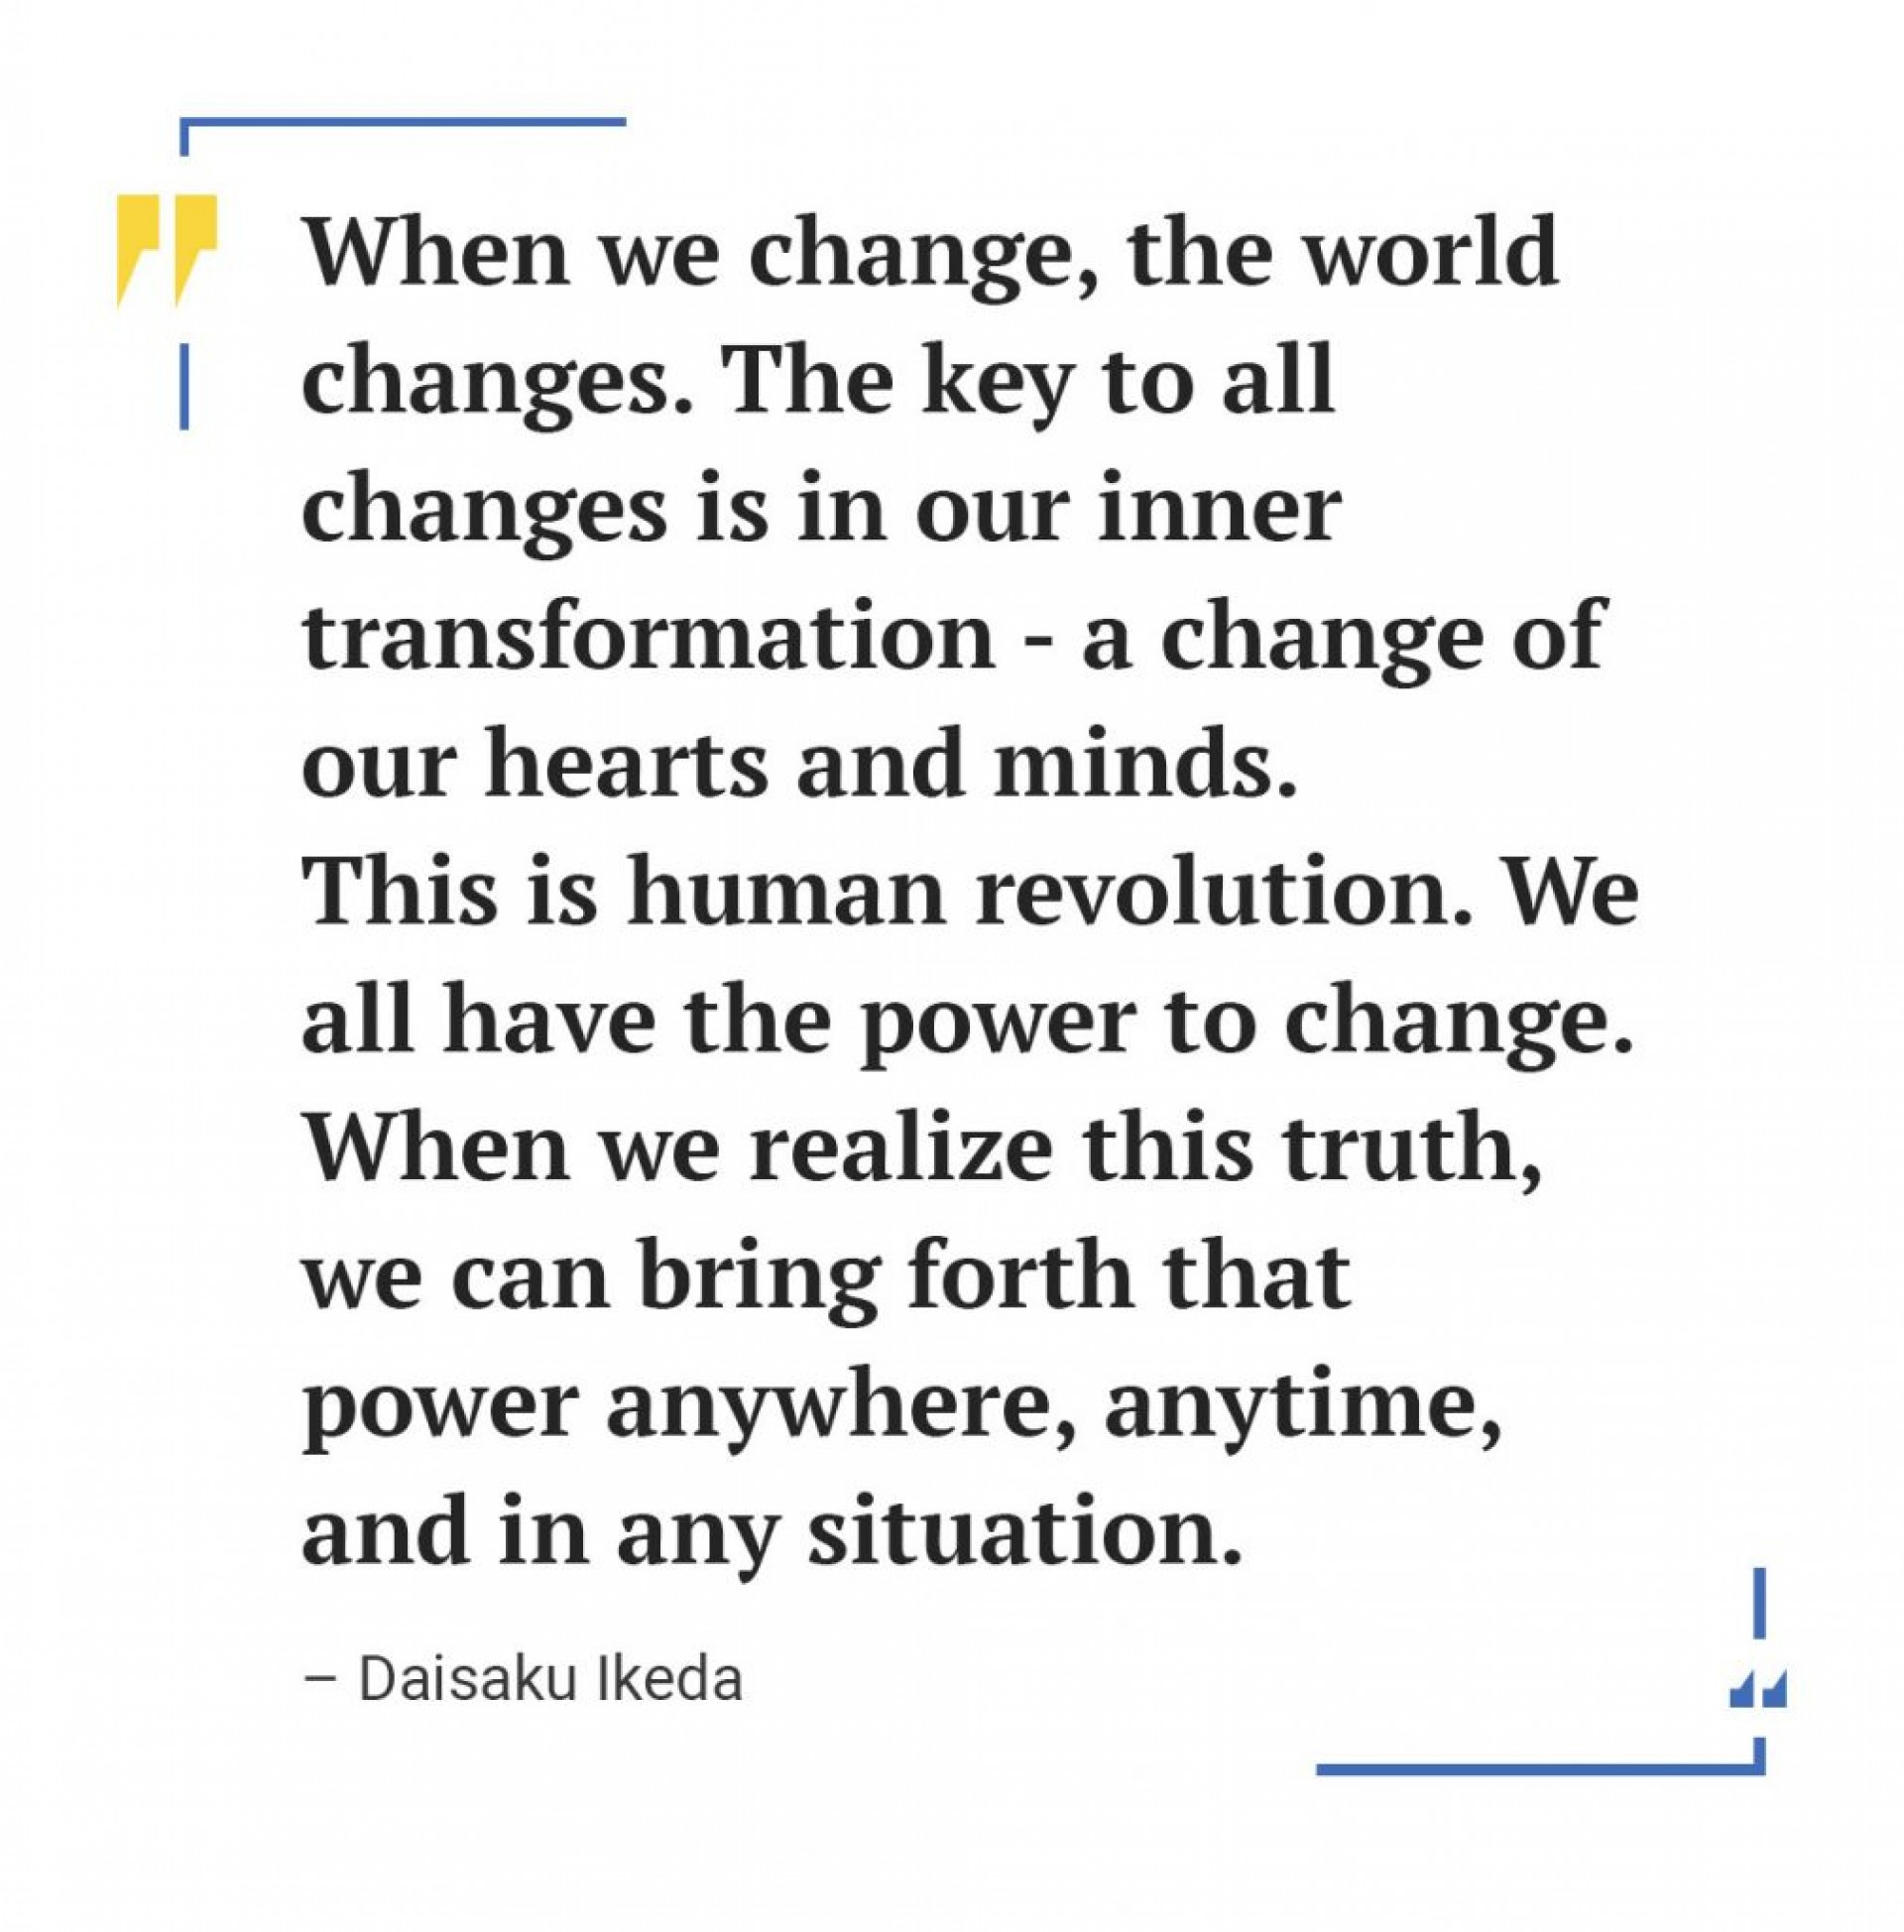 001 Essay Example Daisaku Ikeda Quote 1009x1024 Awesome Change Topics The World Contest Titles 1920